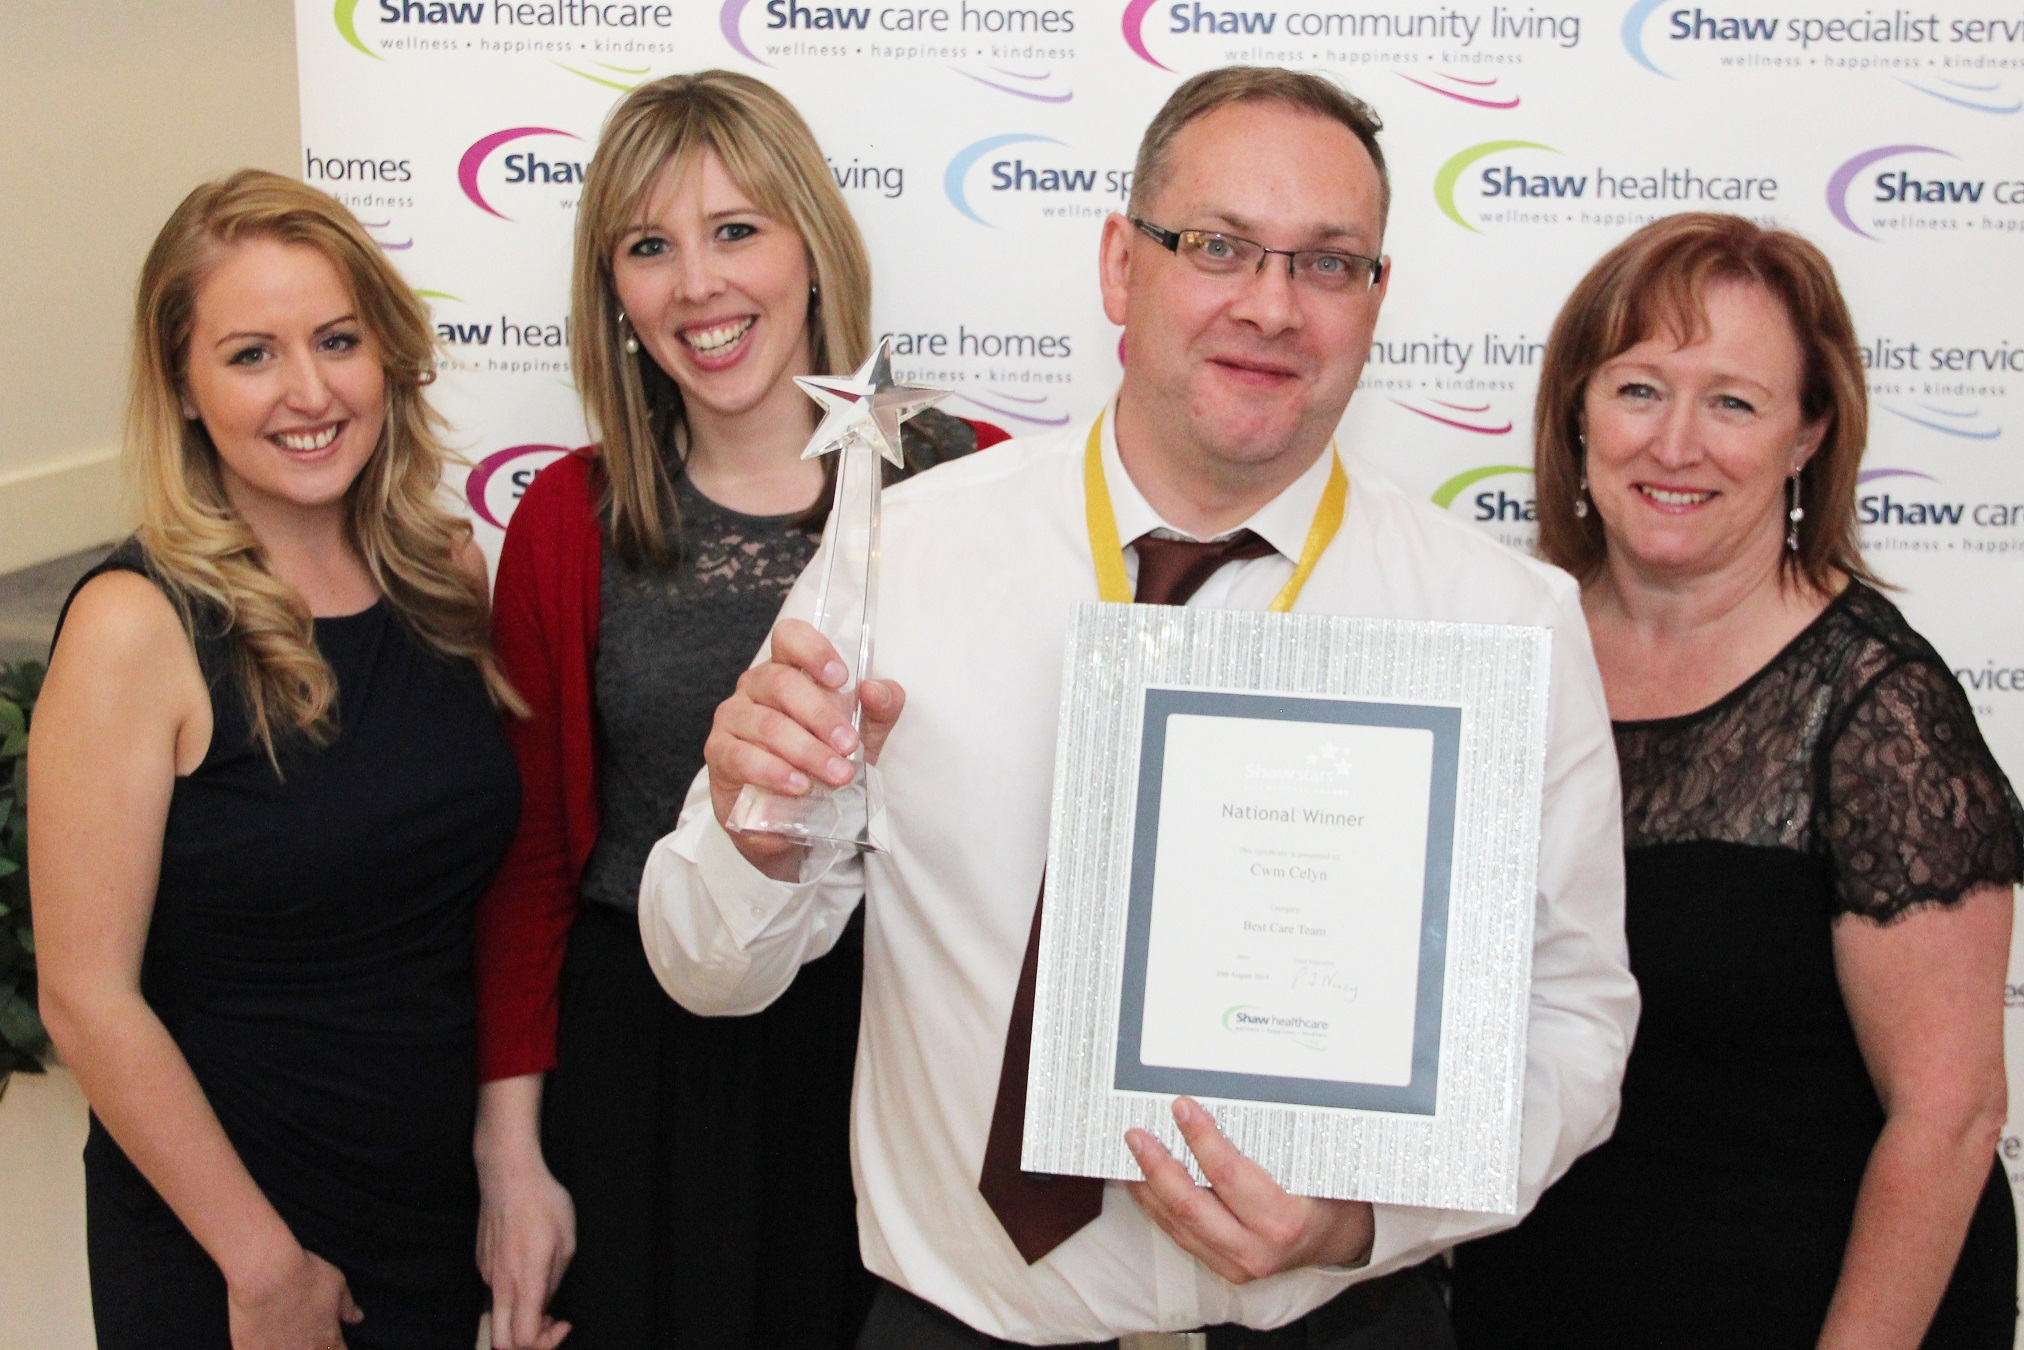 (L-R) Rhian Rogers and Annabel John from award sponsor Freshwater, Simon Morgan, manager of Cwmcelyn and Suzanne Hughes, director of care and operations at Shaw healthcare